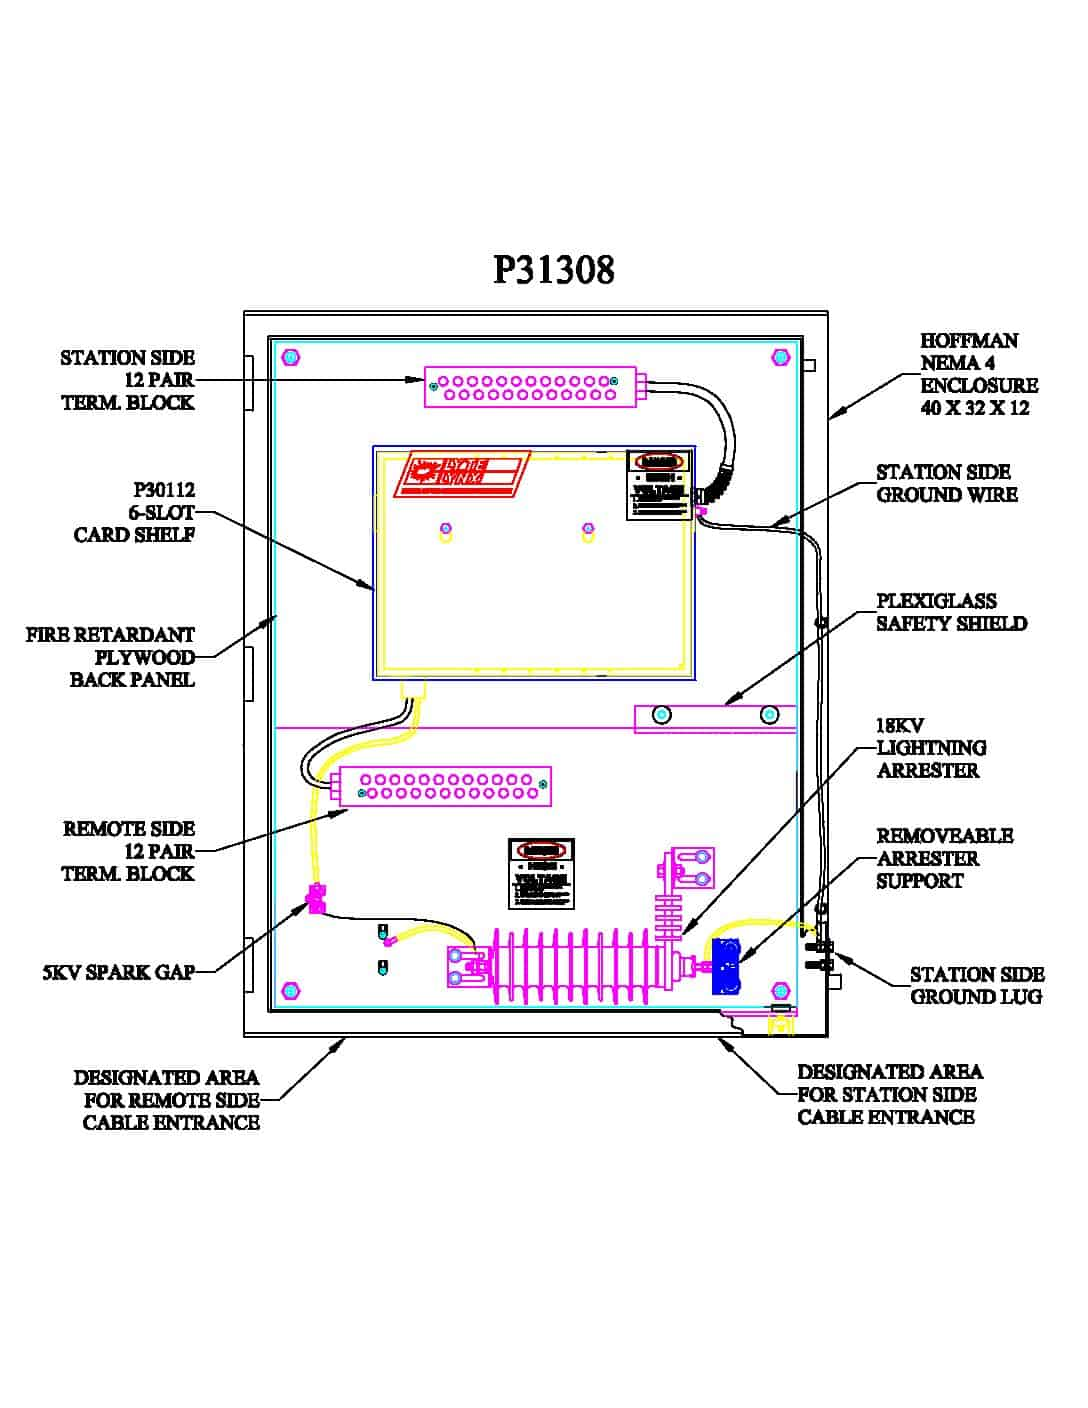 P31308 Turnkey Protection Packages – 6 slot PDF thumbnail